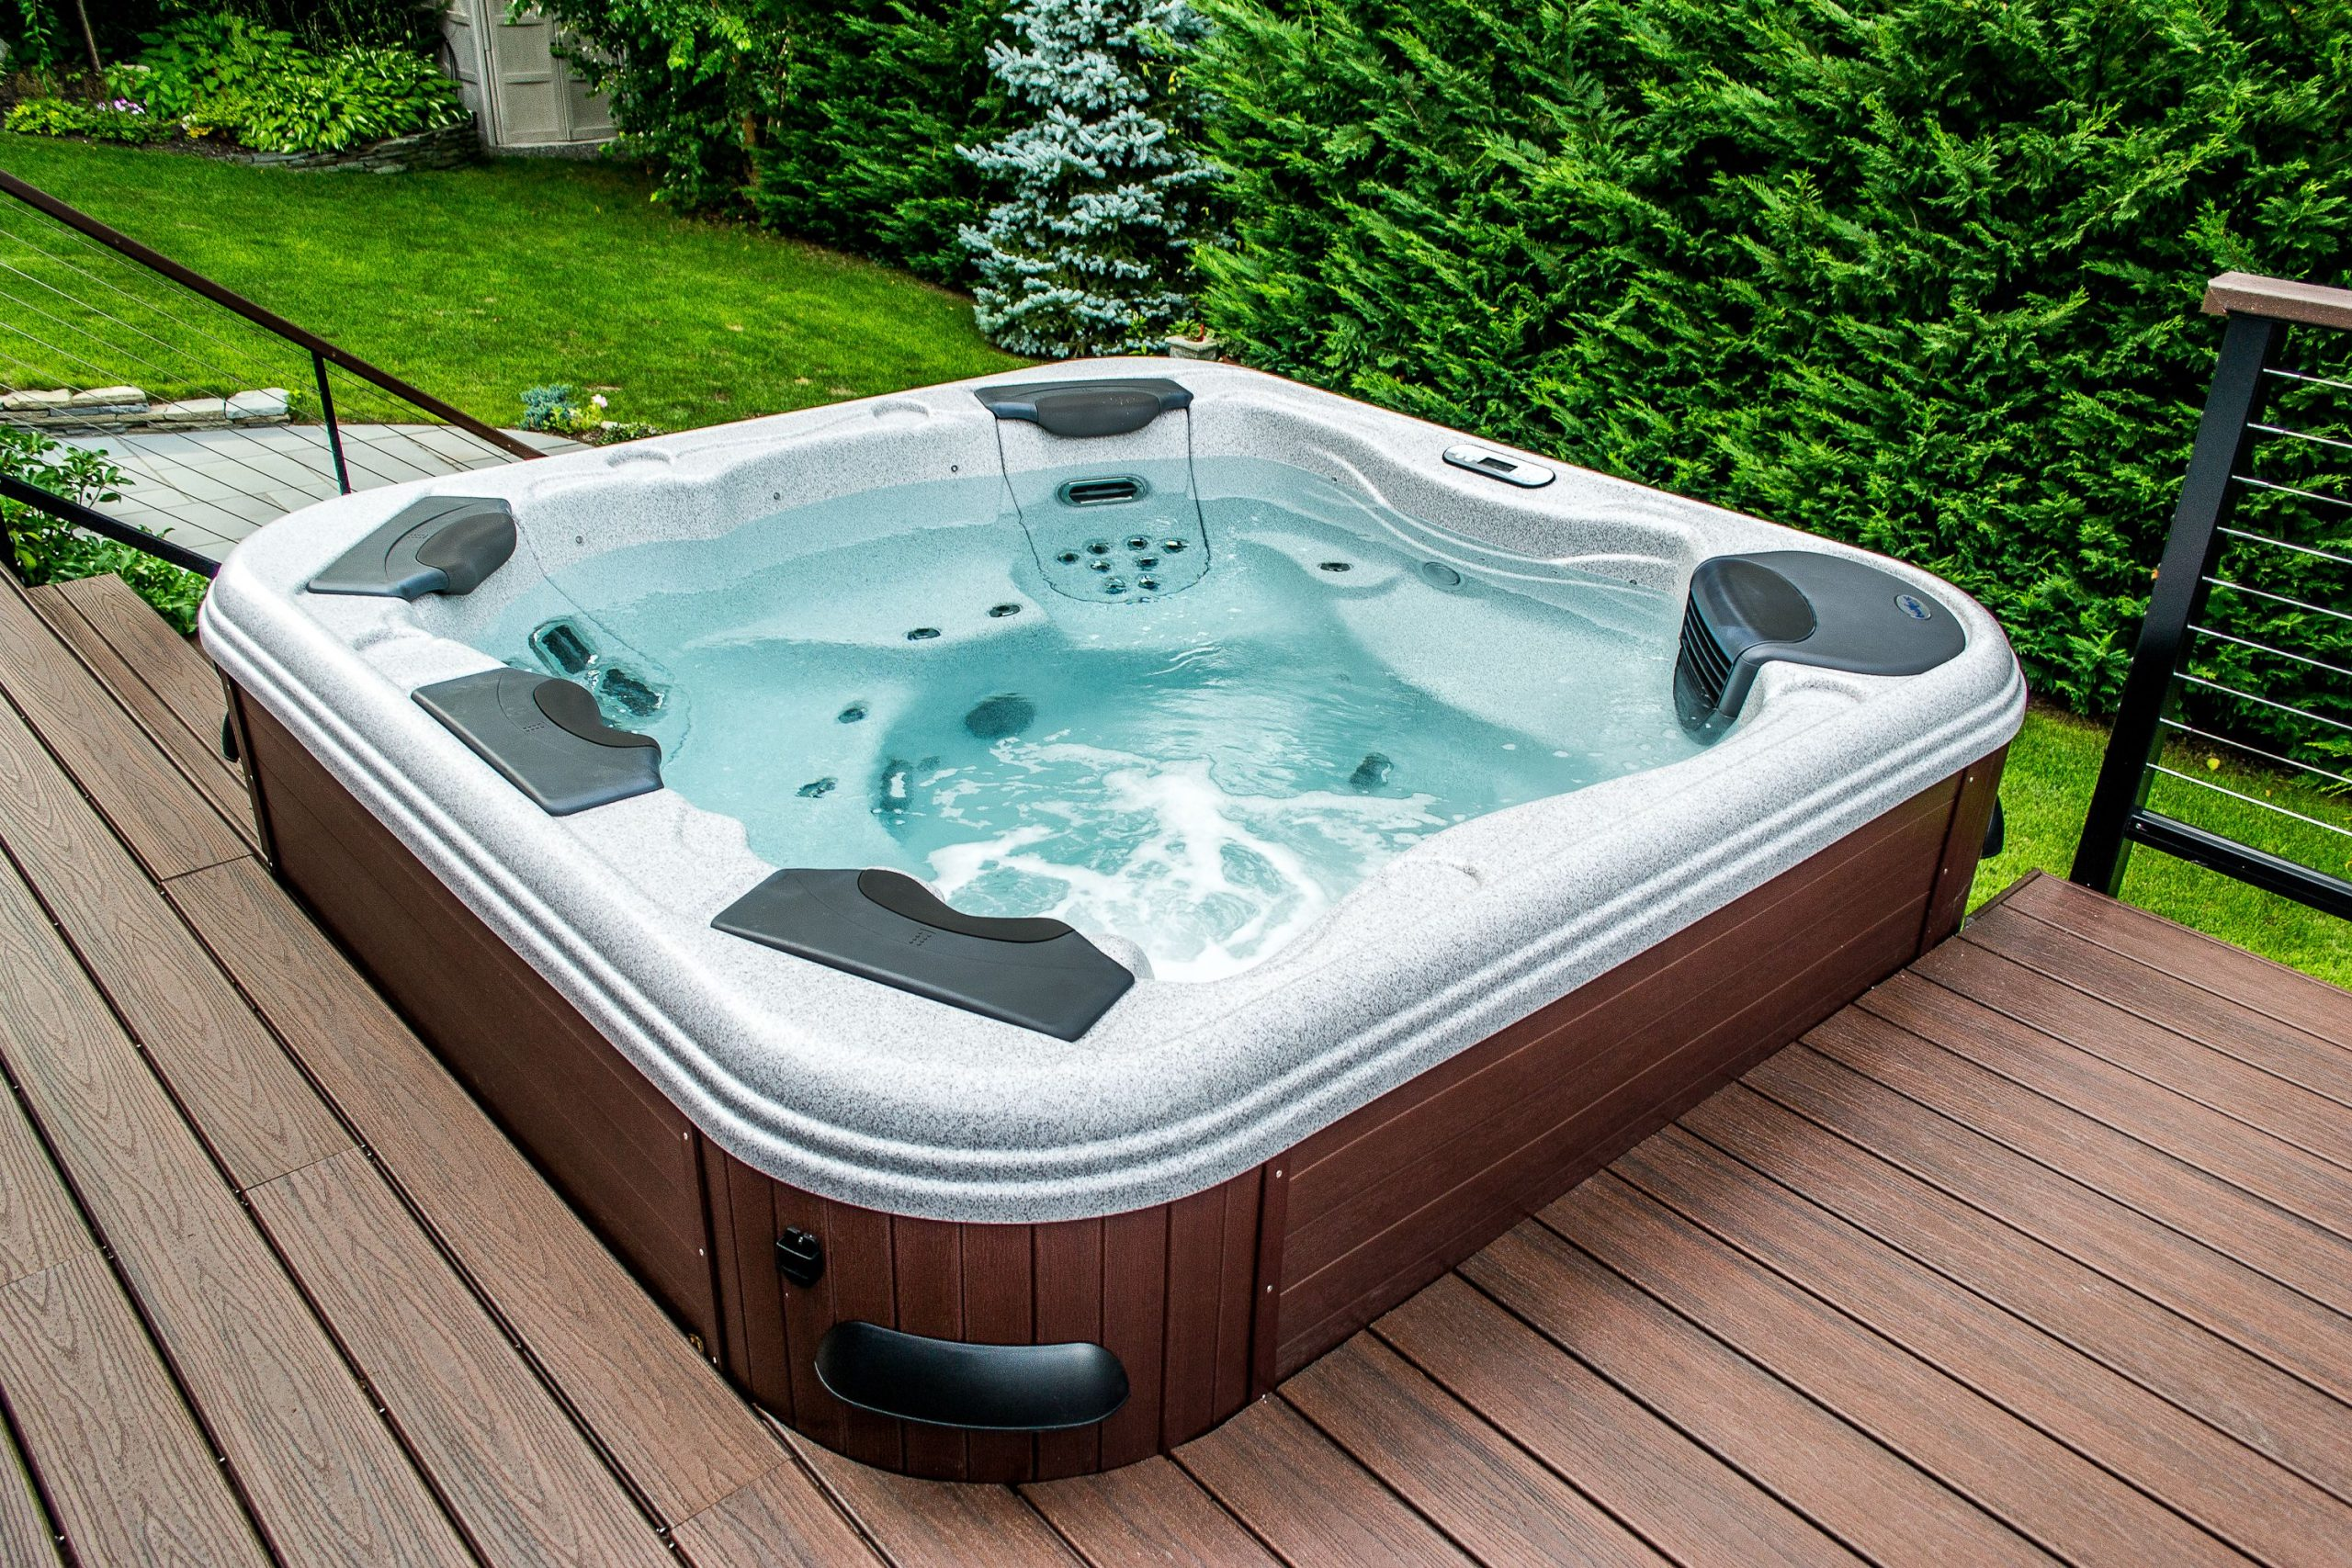 Pools Spas Hot Tubs Patios Hardscapes More A Backyard Creation